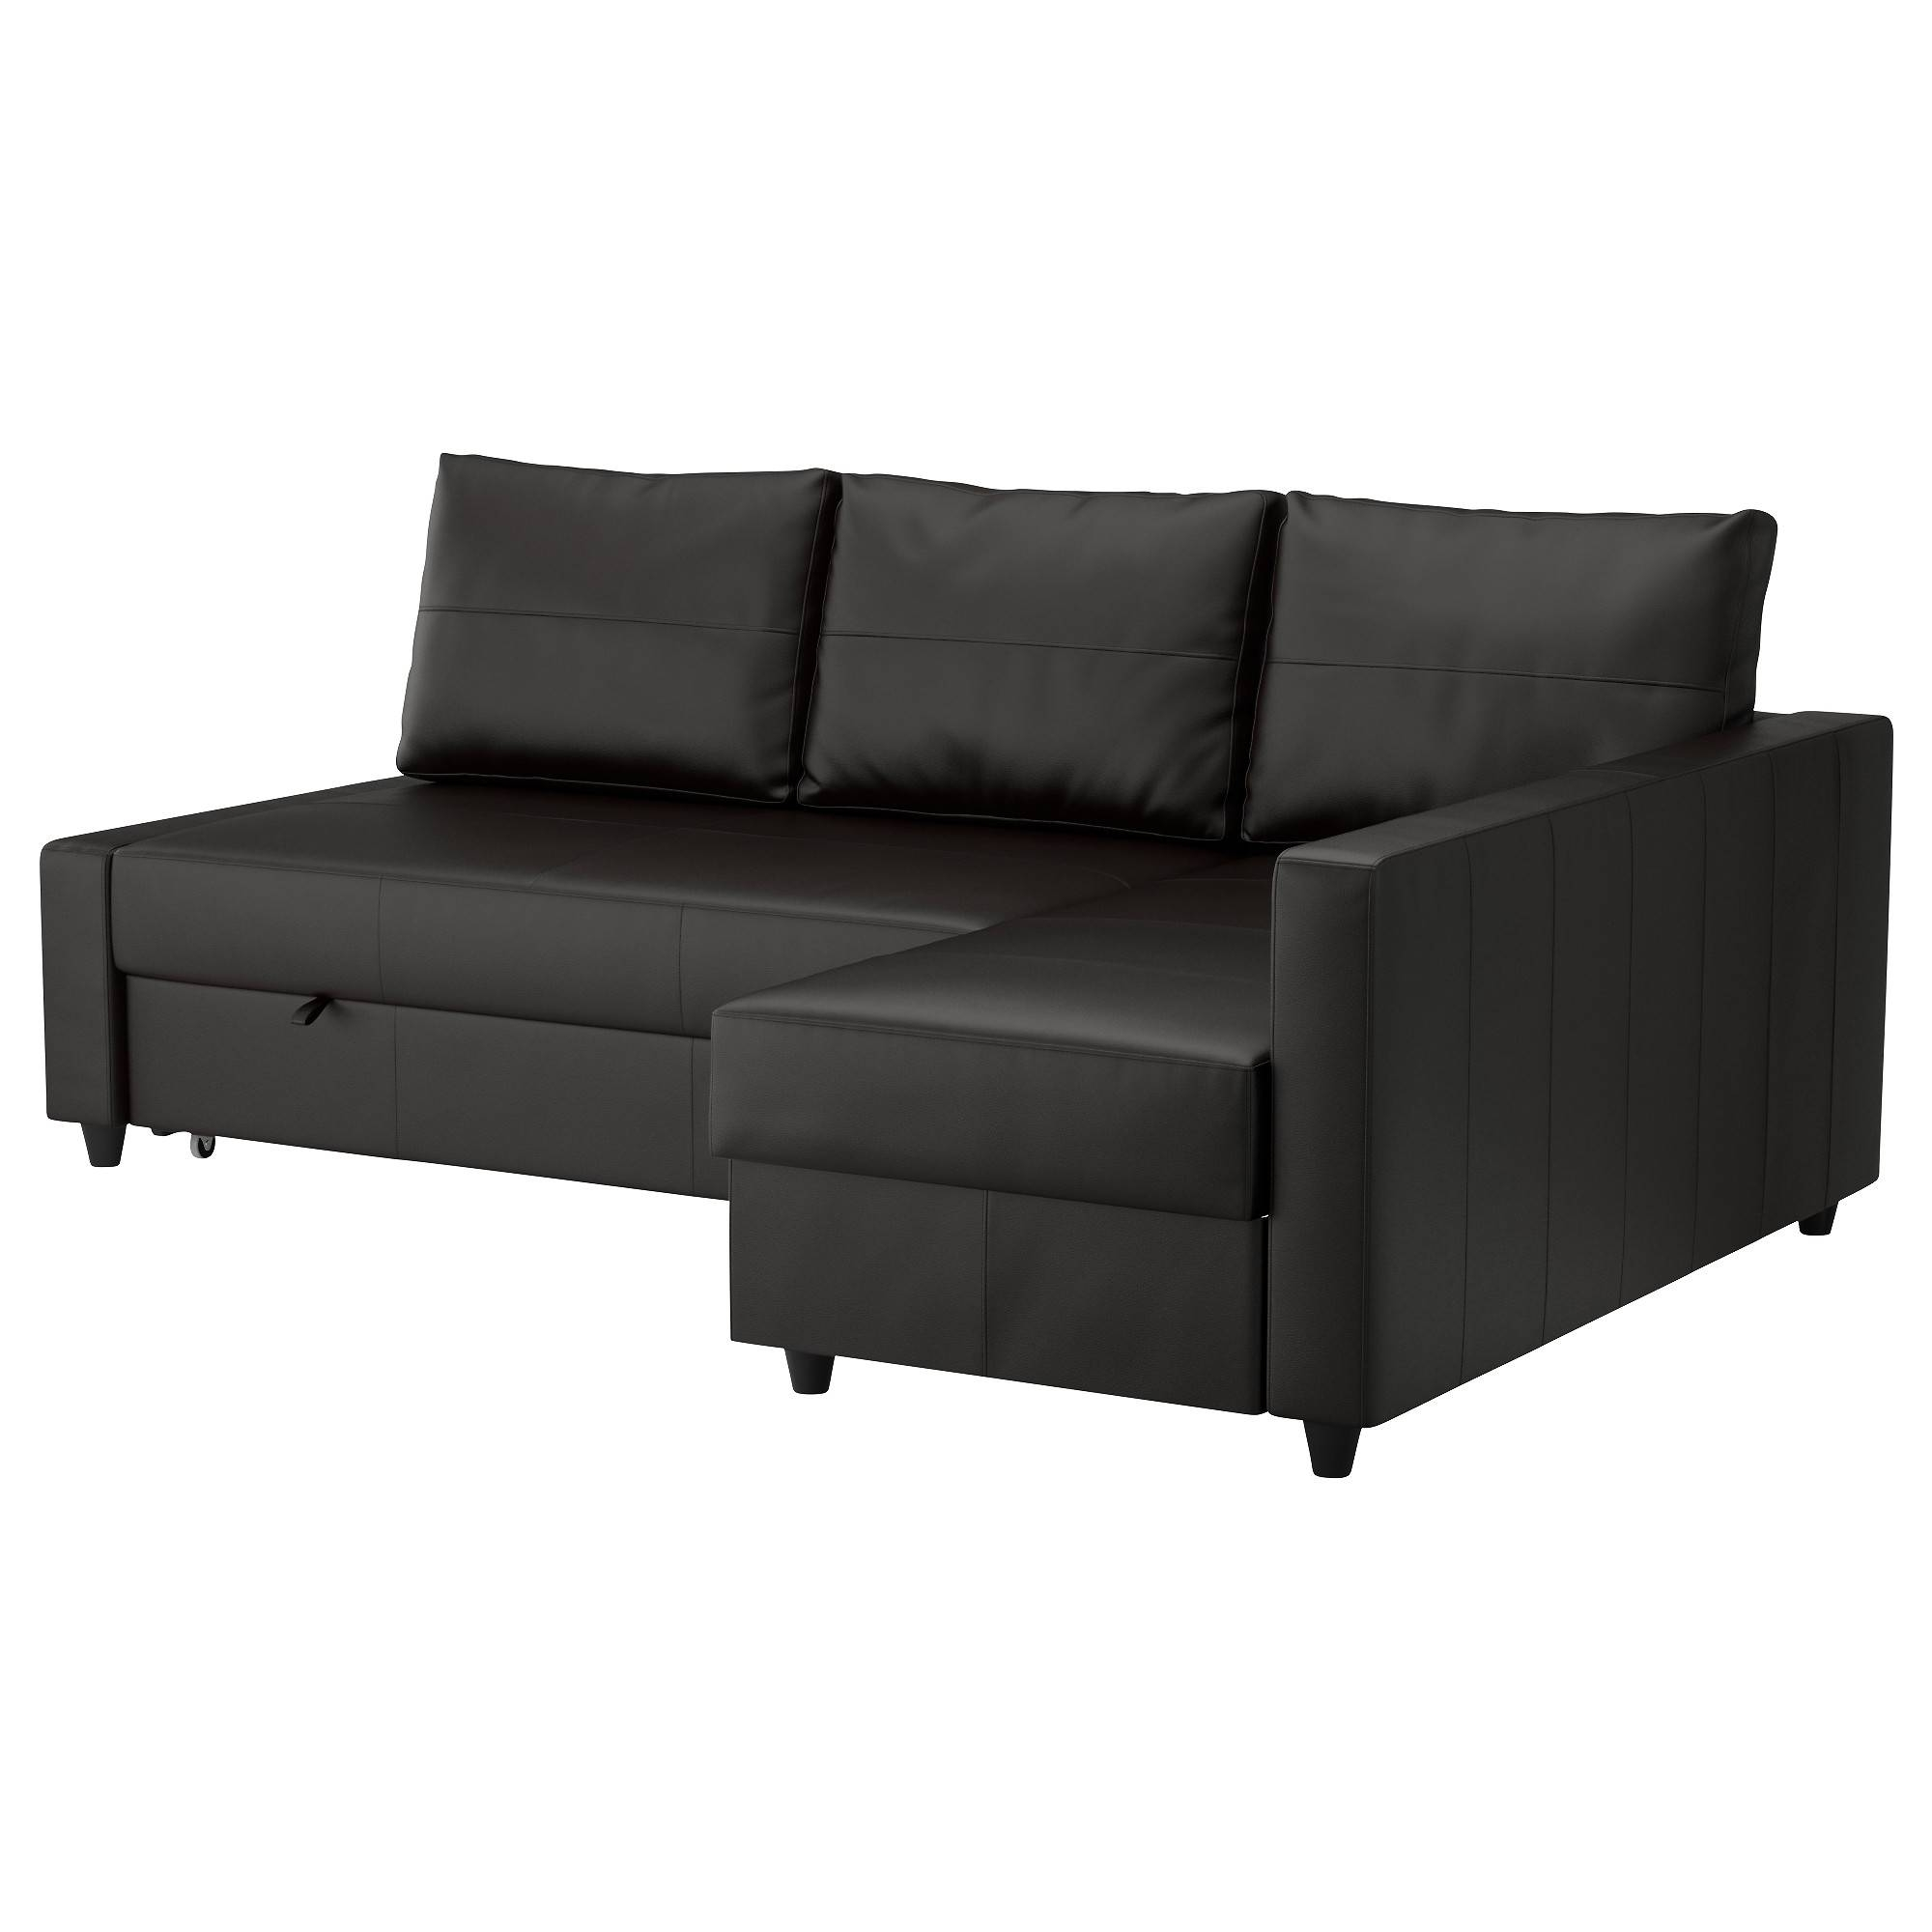 Friheten Corner Sofa-Bed With Storage - Skiftebo Dark Gray - Ikea in Sofa Beds Chairs (Image 5 of 15)